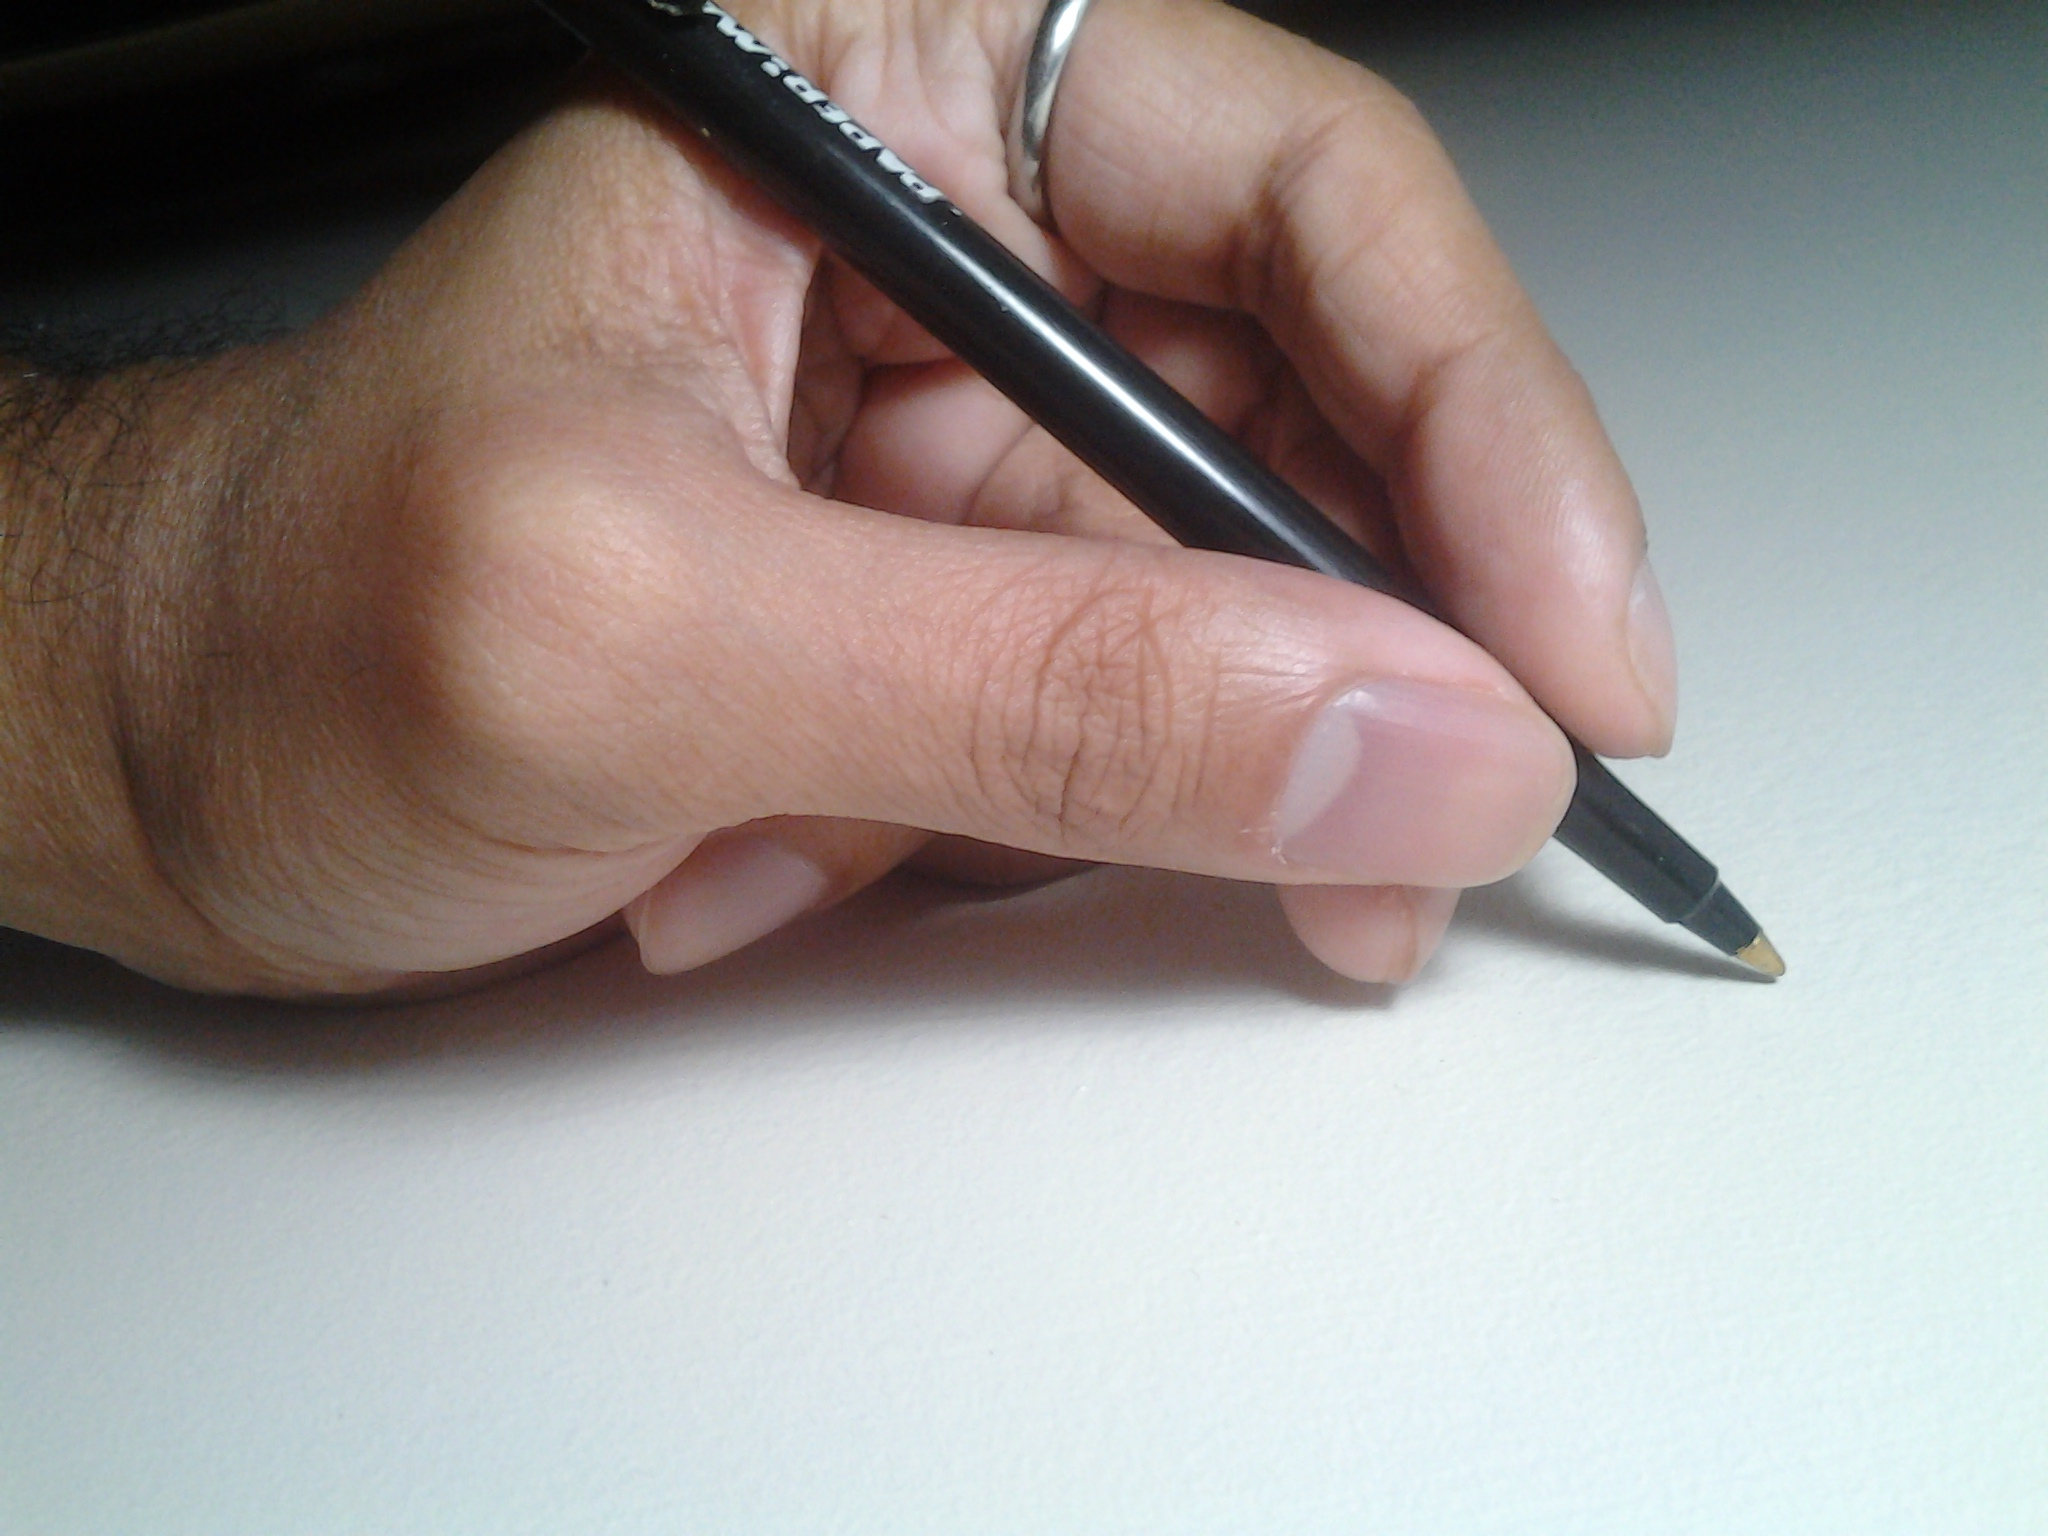 Note How Little Effort Is Needed To Hold The Pen